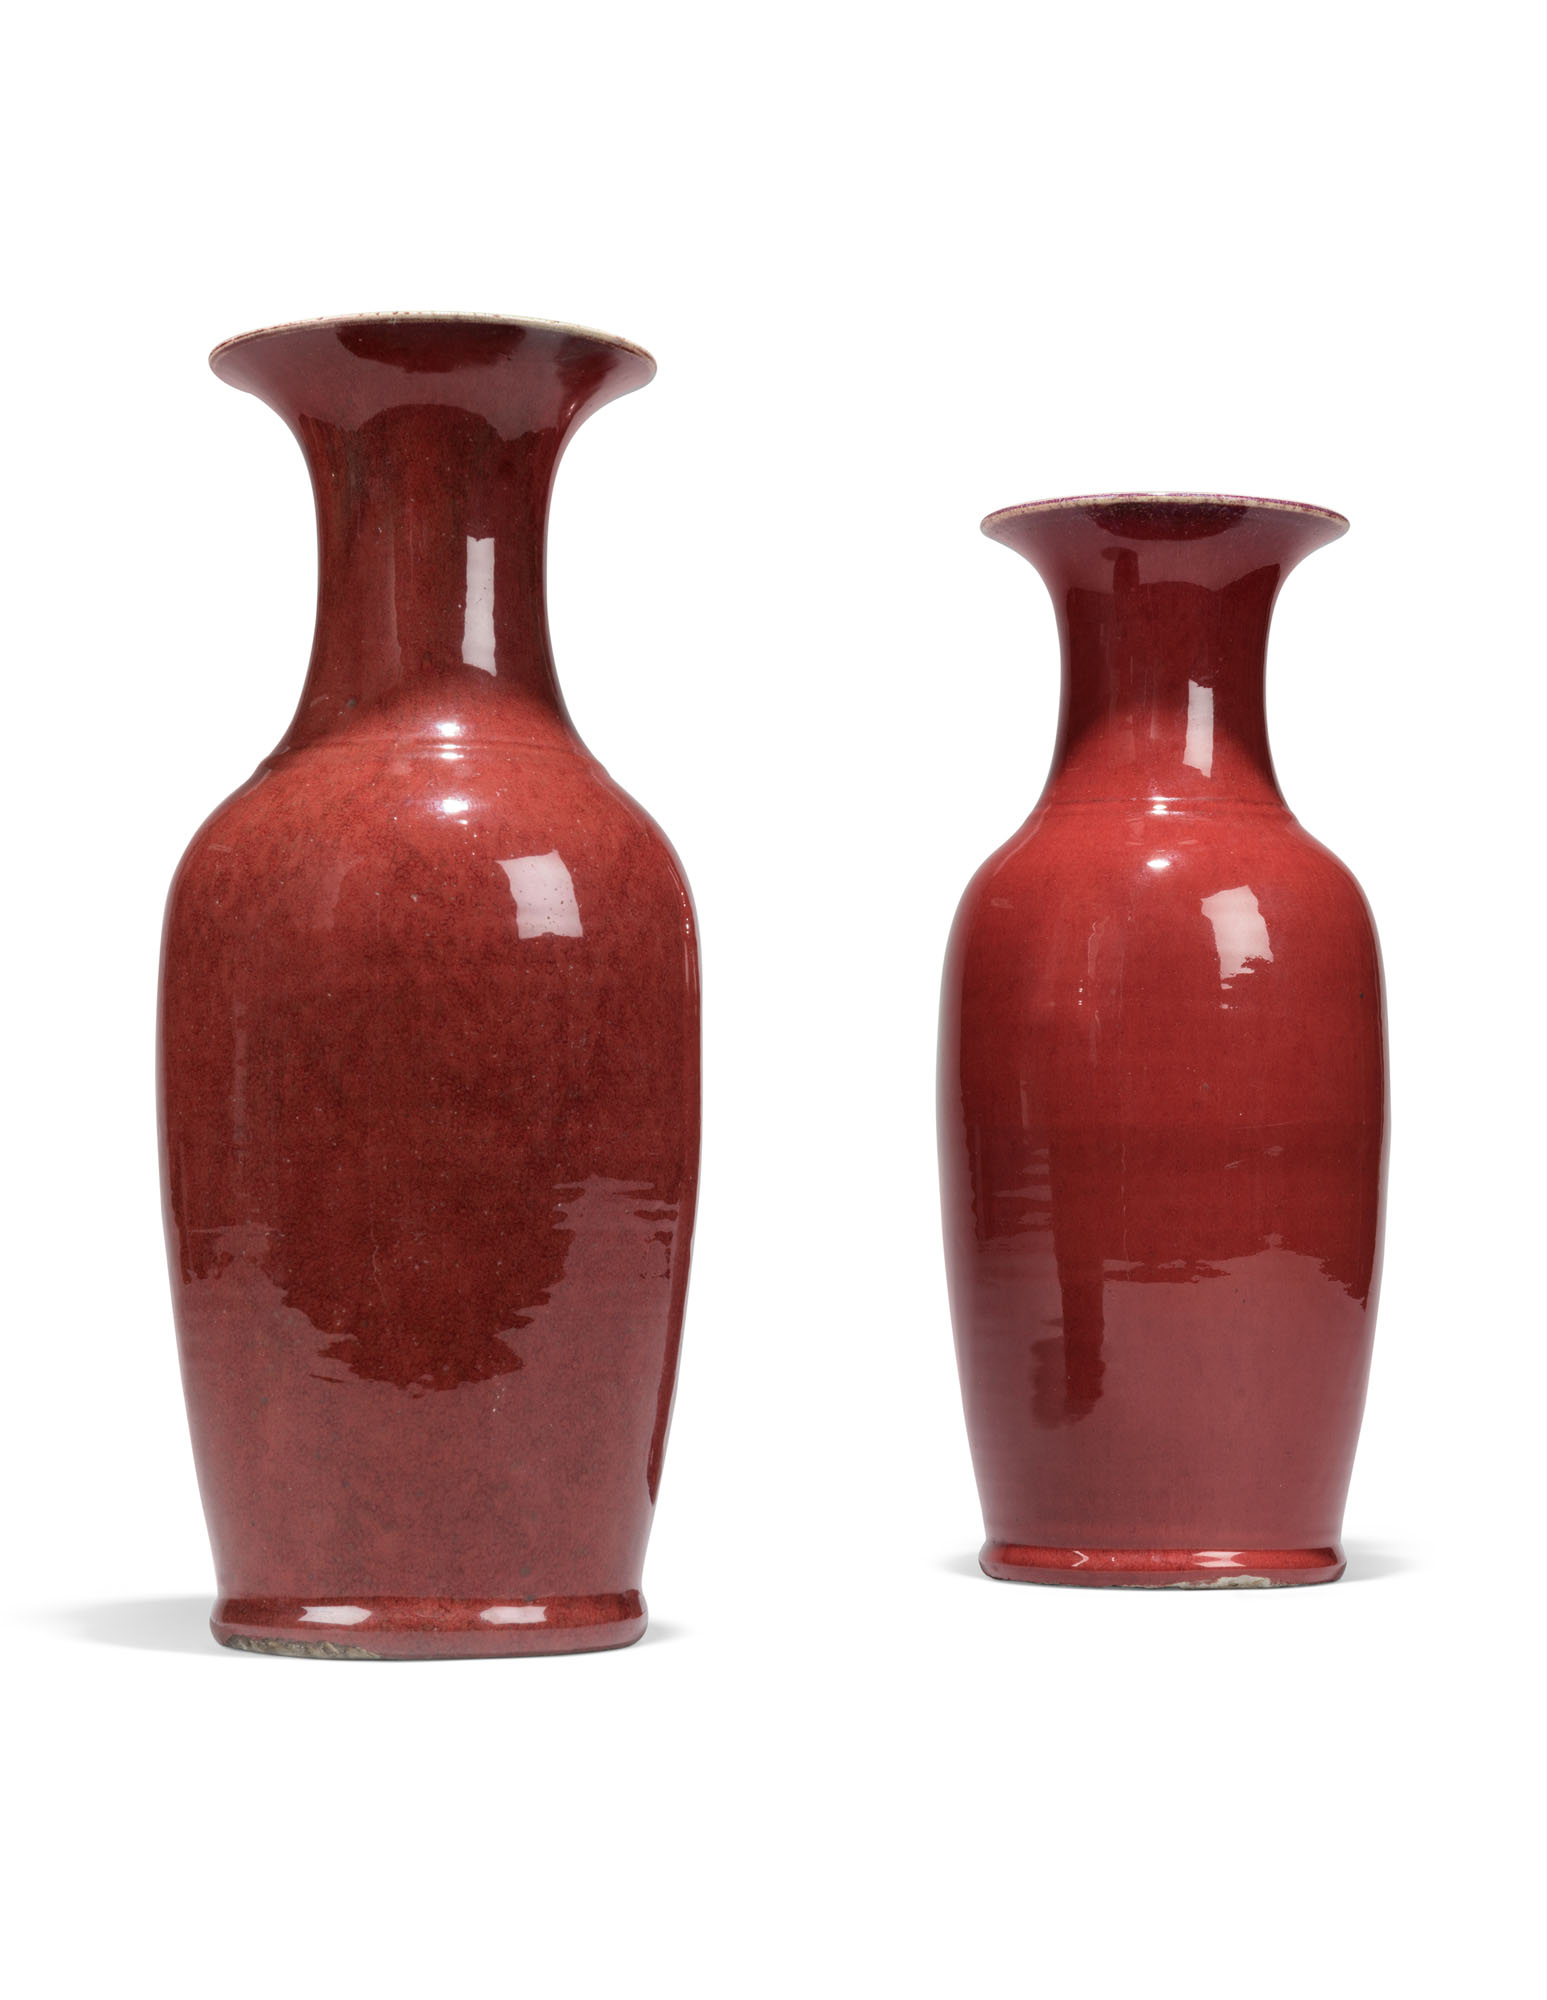 TWO CHINESE COPPER-RED-GLAZED VASES